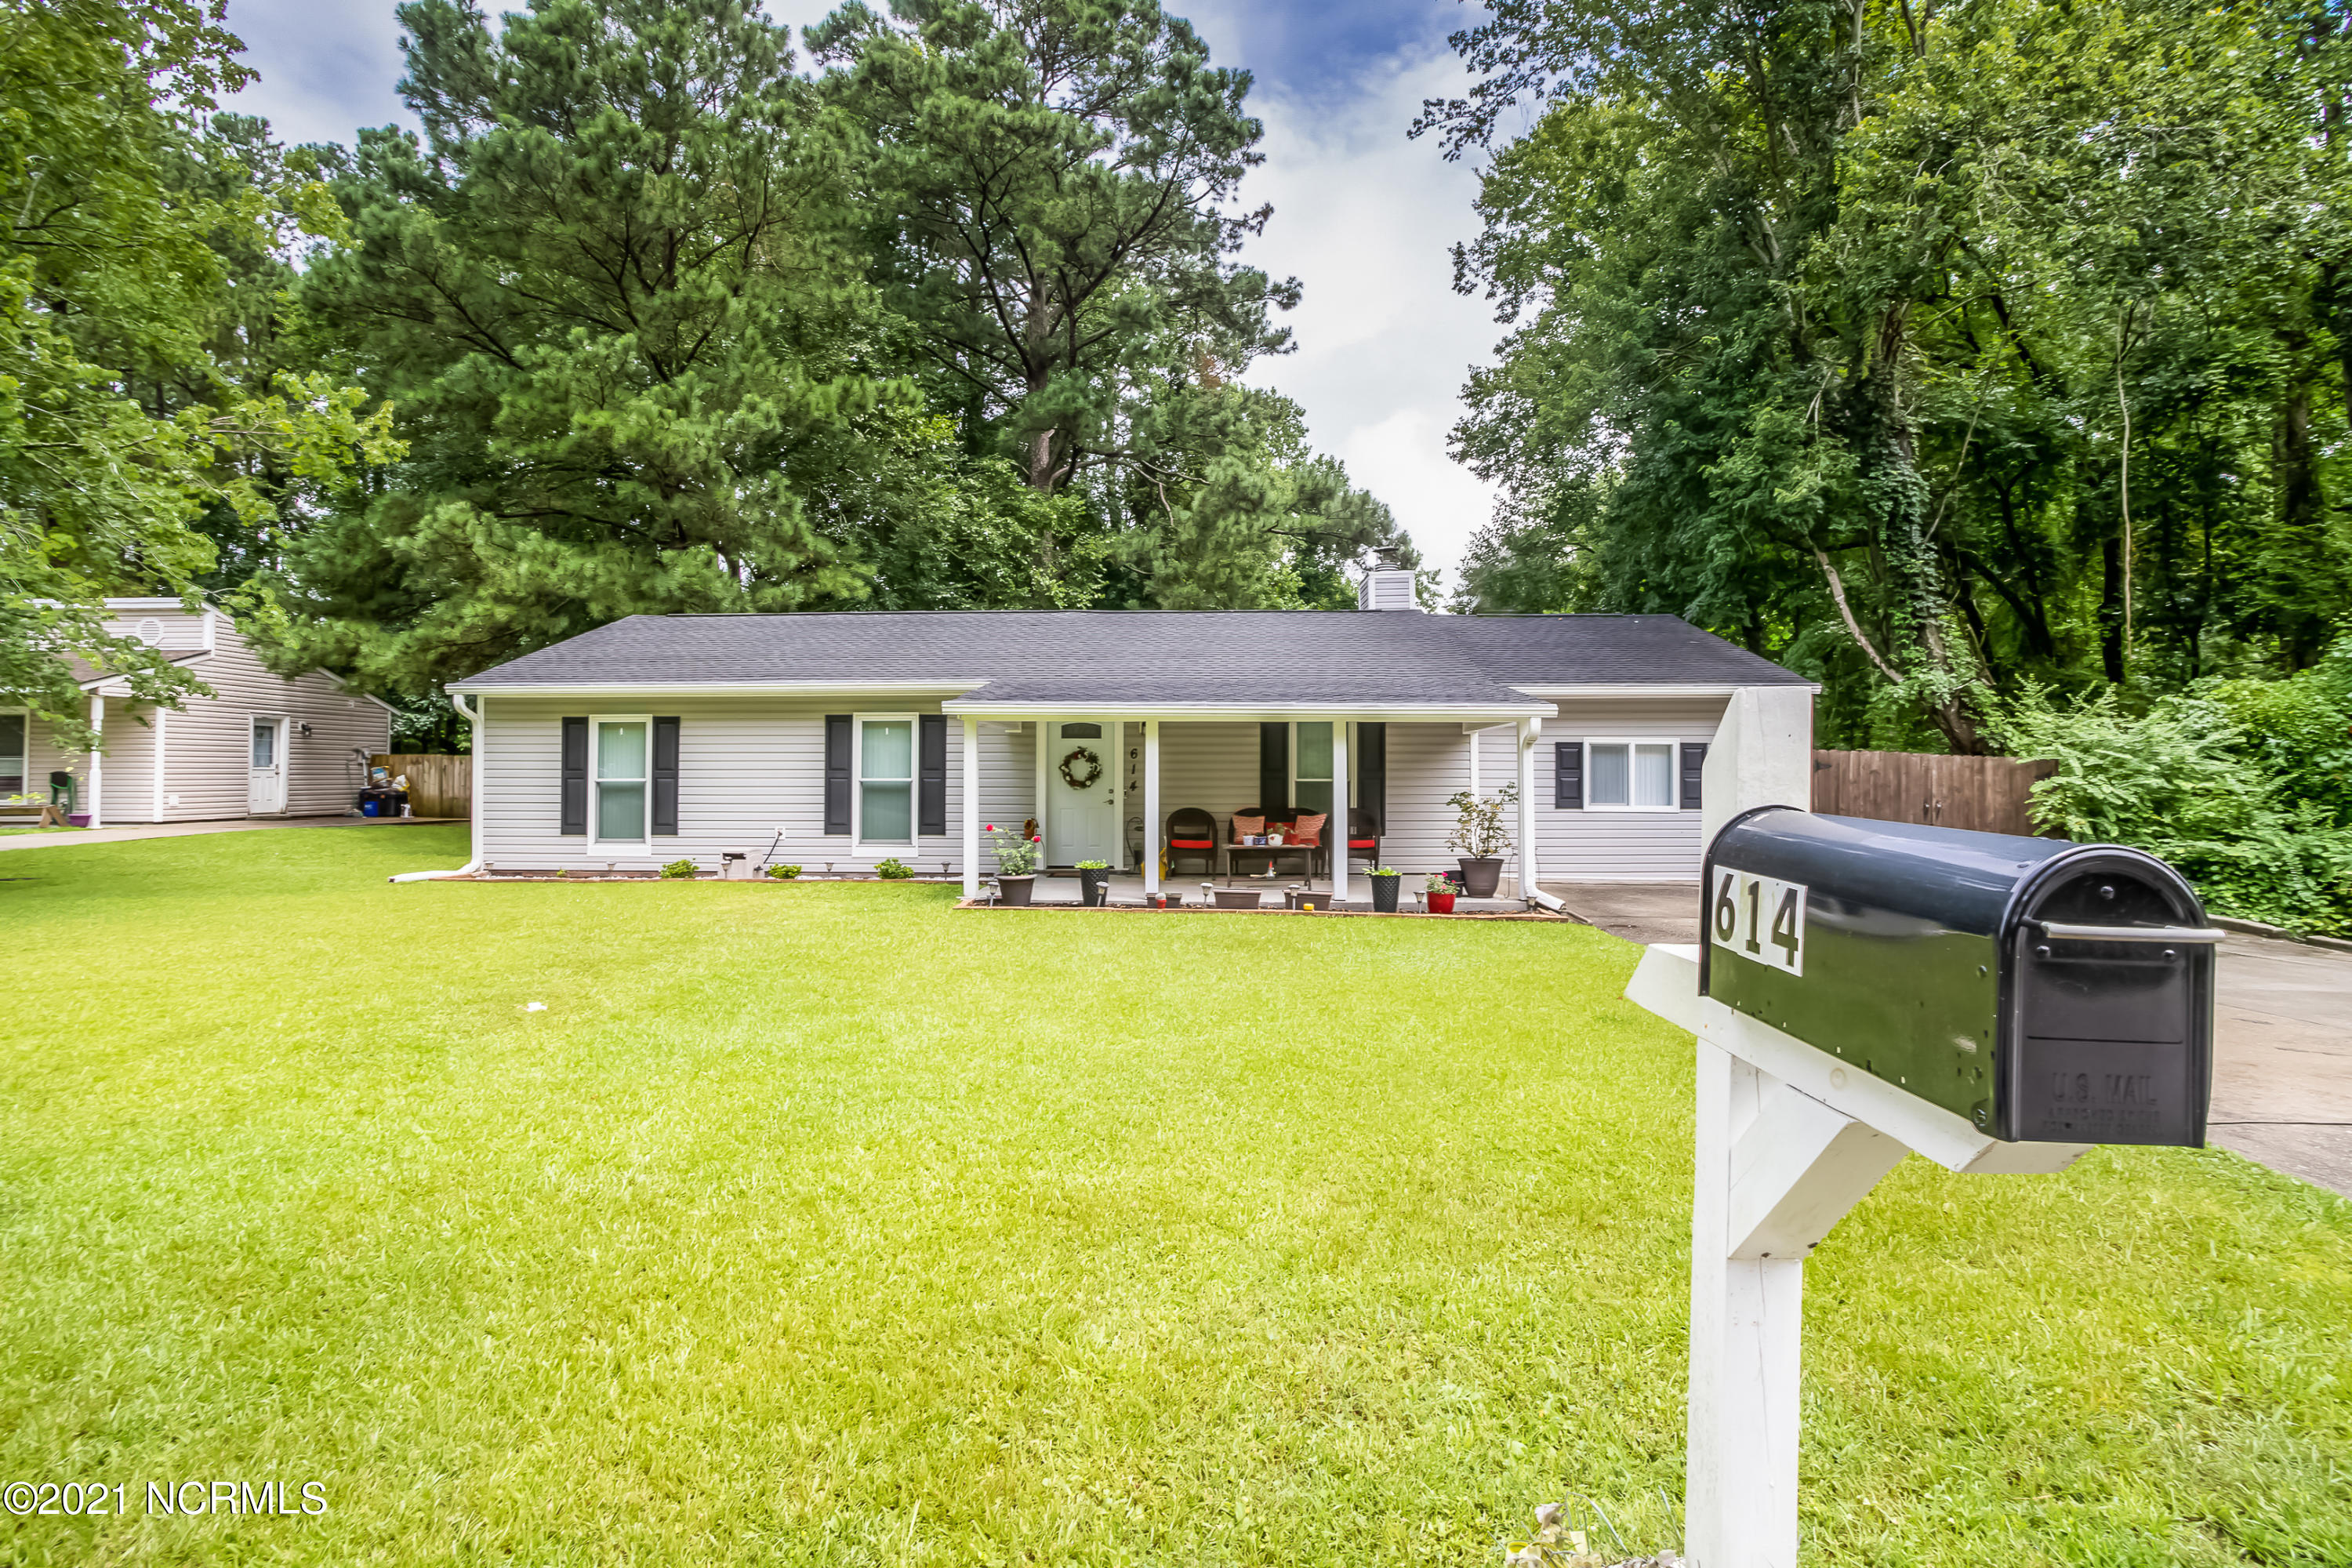 Check out this adorable home located within minutes of Camp Lejeune, mall, shopping centers and the hospital. Granite countertops, stainless steel appliances and 2 bonus rooms. Large living room with  fireplace. Fenced in back yard and a cute covered front porch .   Don't let this one slip by.